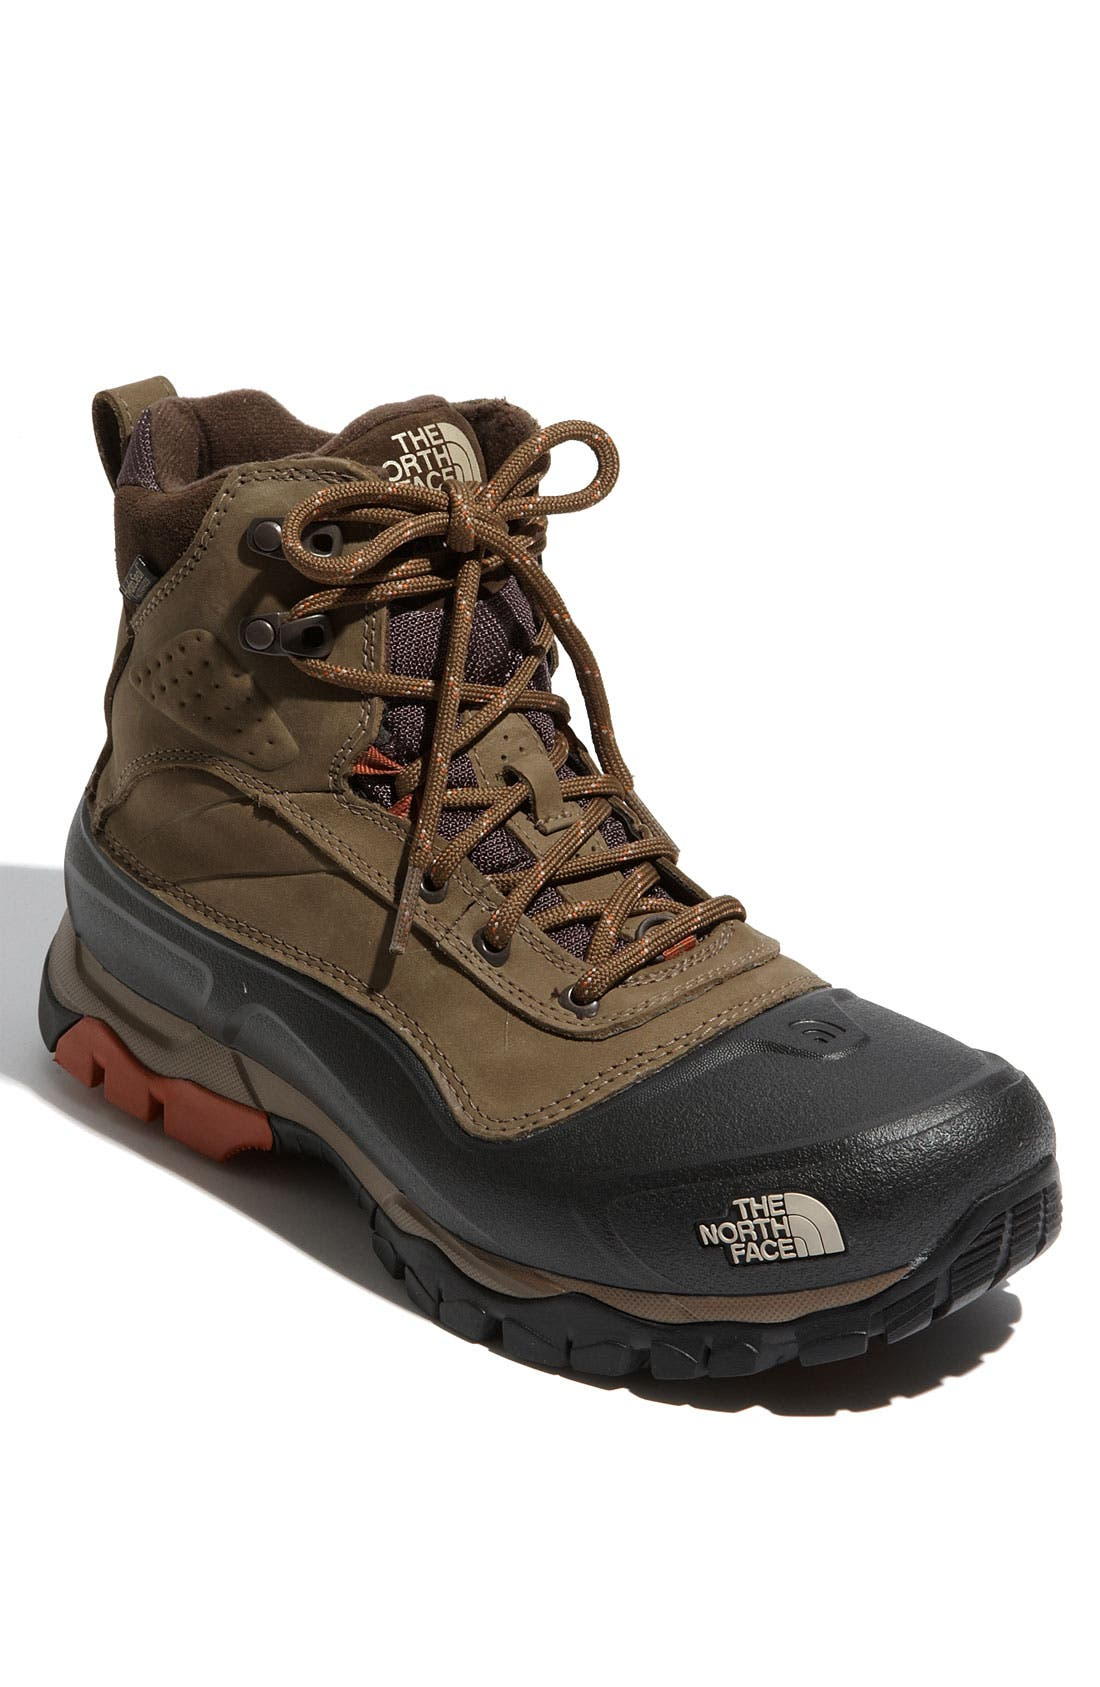 Alternate Image 1 Selected - The North Face 'Snow-Chute' Boot